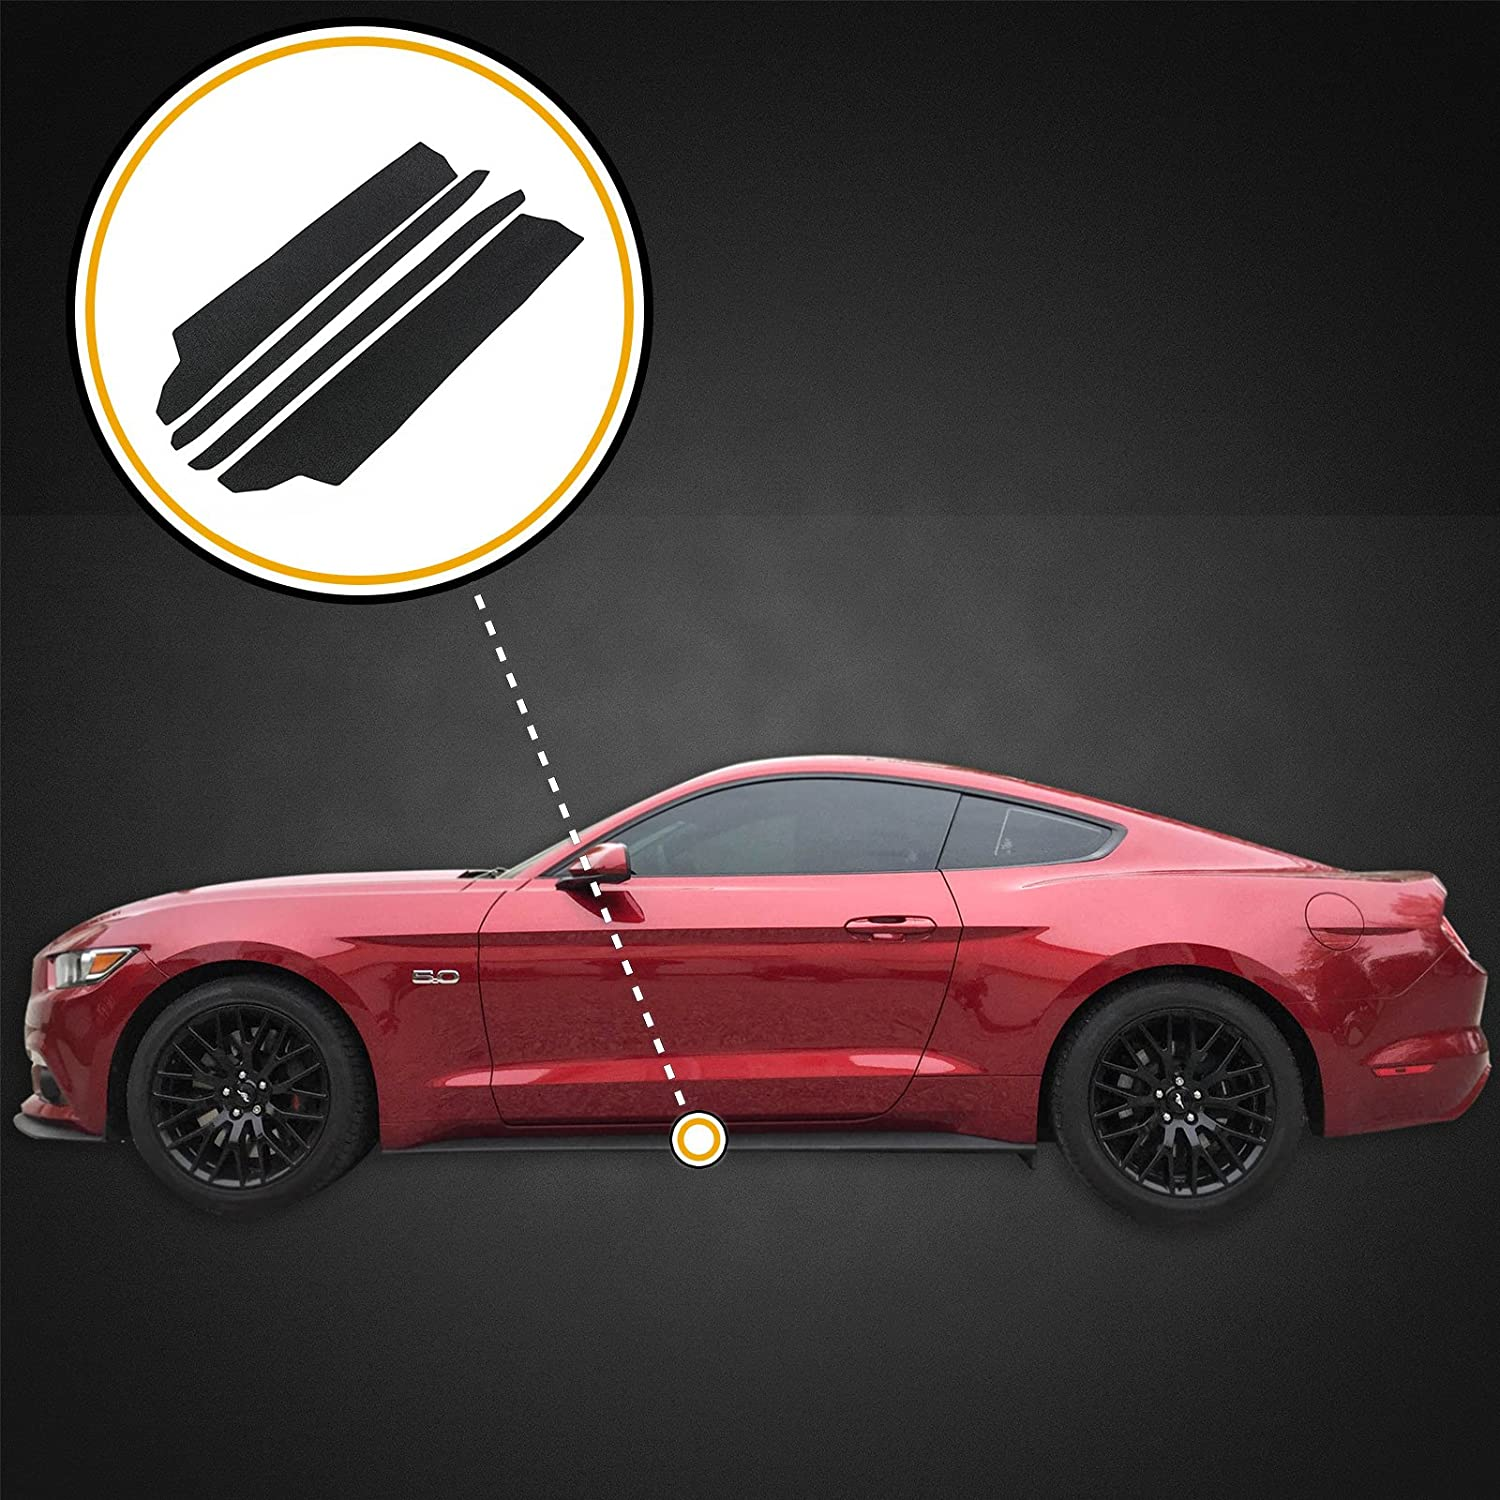 Red Hound Auto Door Entry Guards Scratch Shield 2015-2018 Compatible with Ford Mustang 4pc Kit Paint Protector Black Threshold Cover Peel and Stick Install